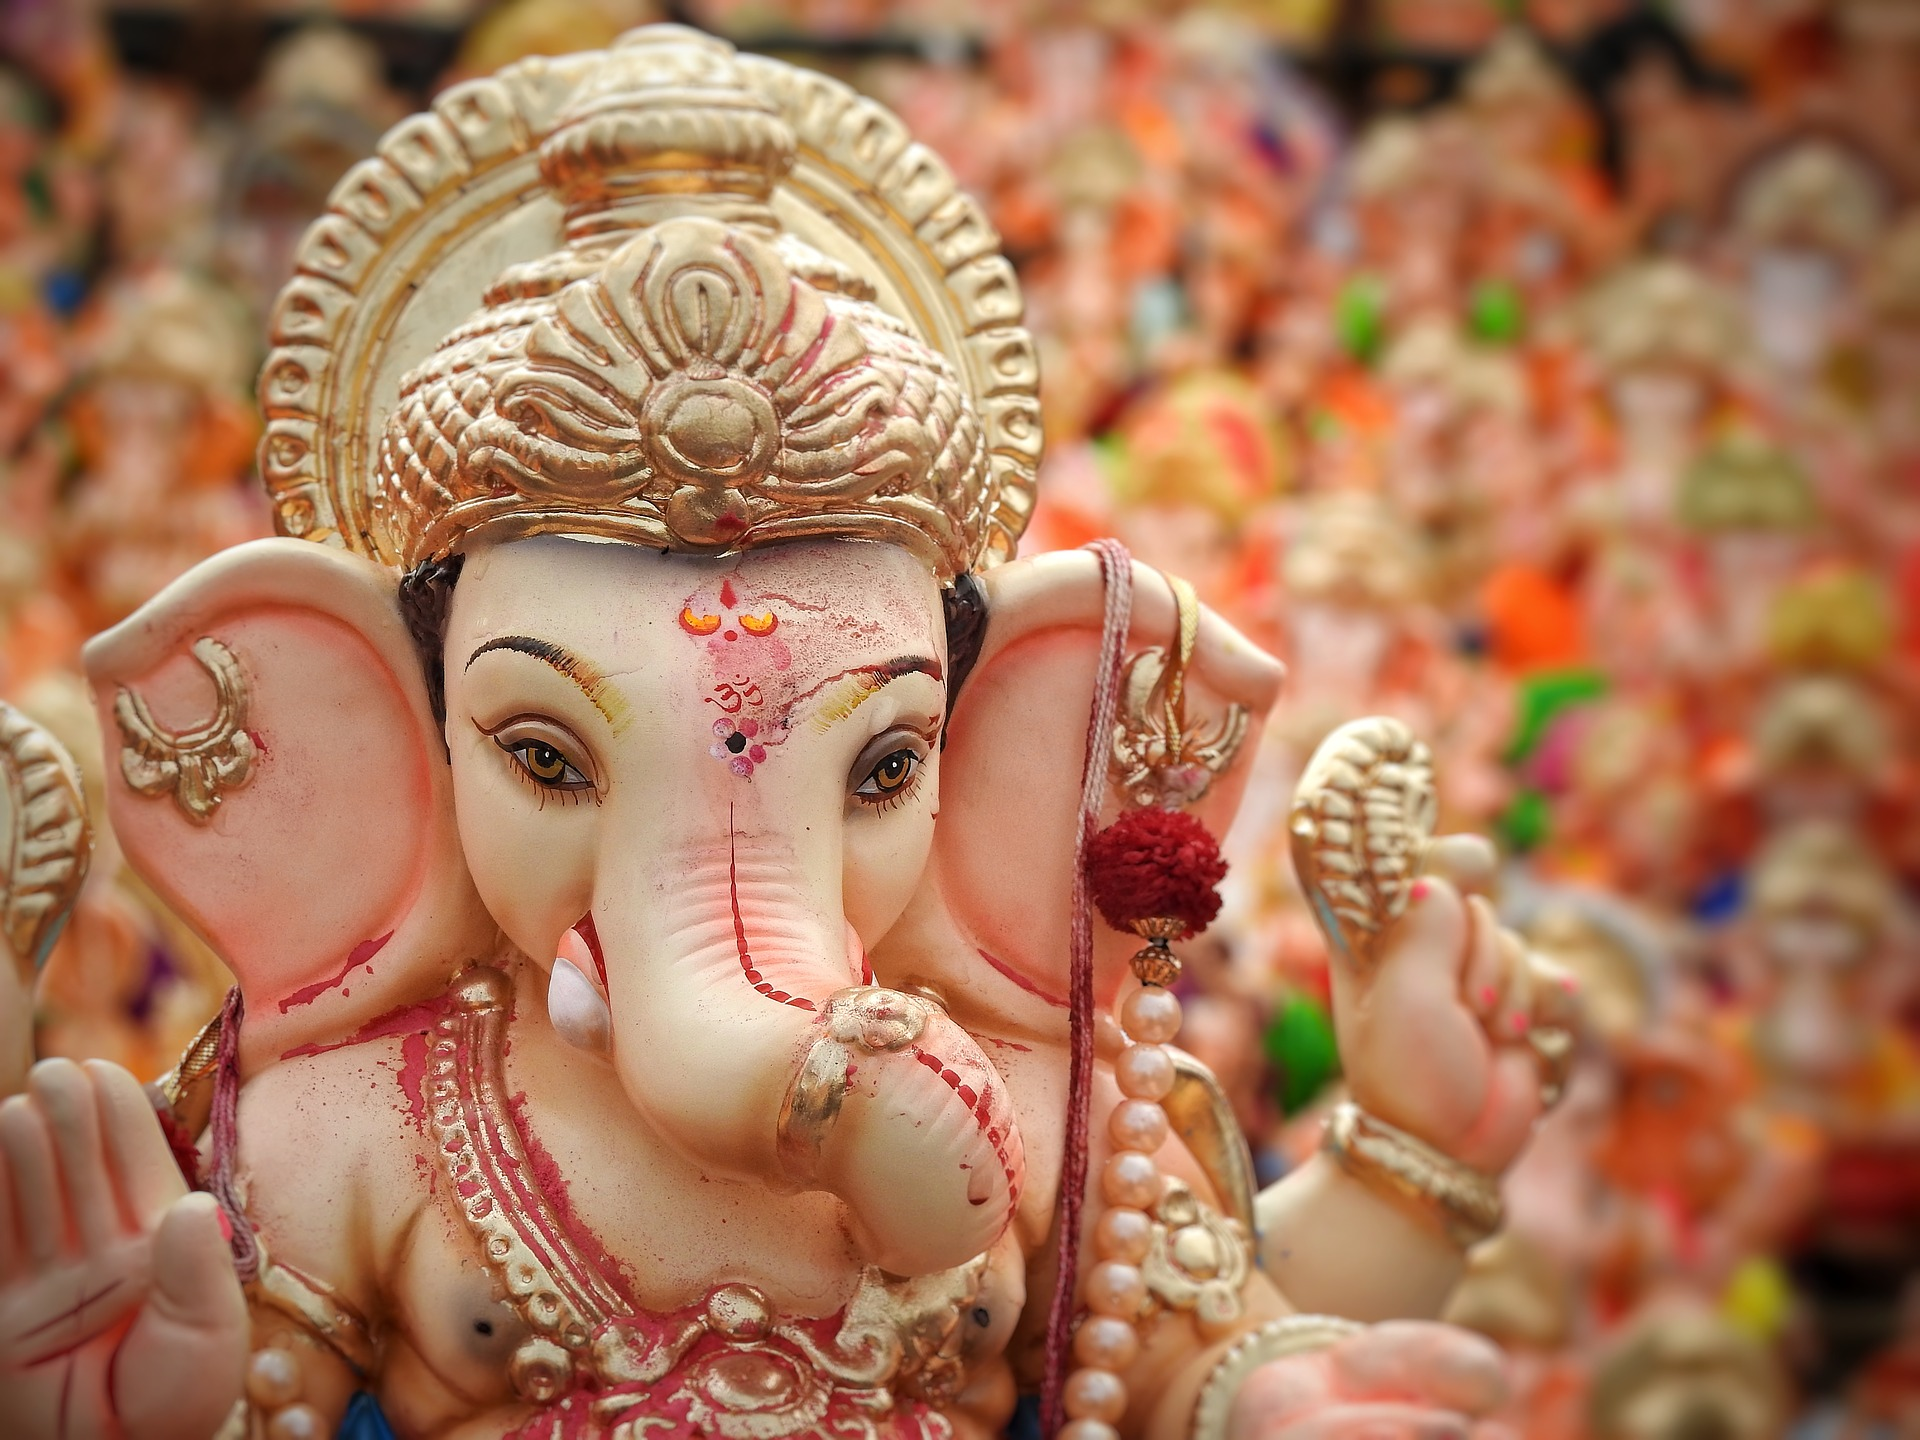 The Best Ganesh Chaturthi Gifts for Friends & Family in Dubai